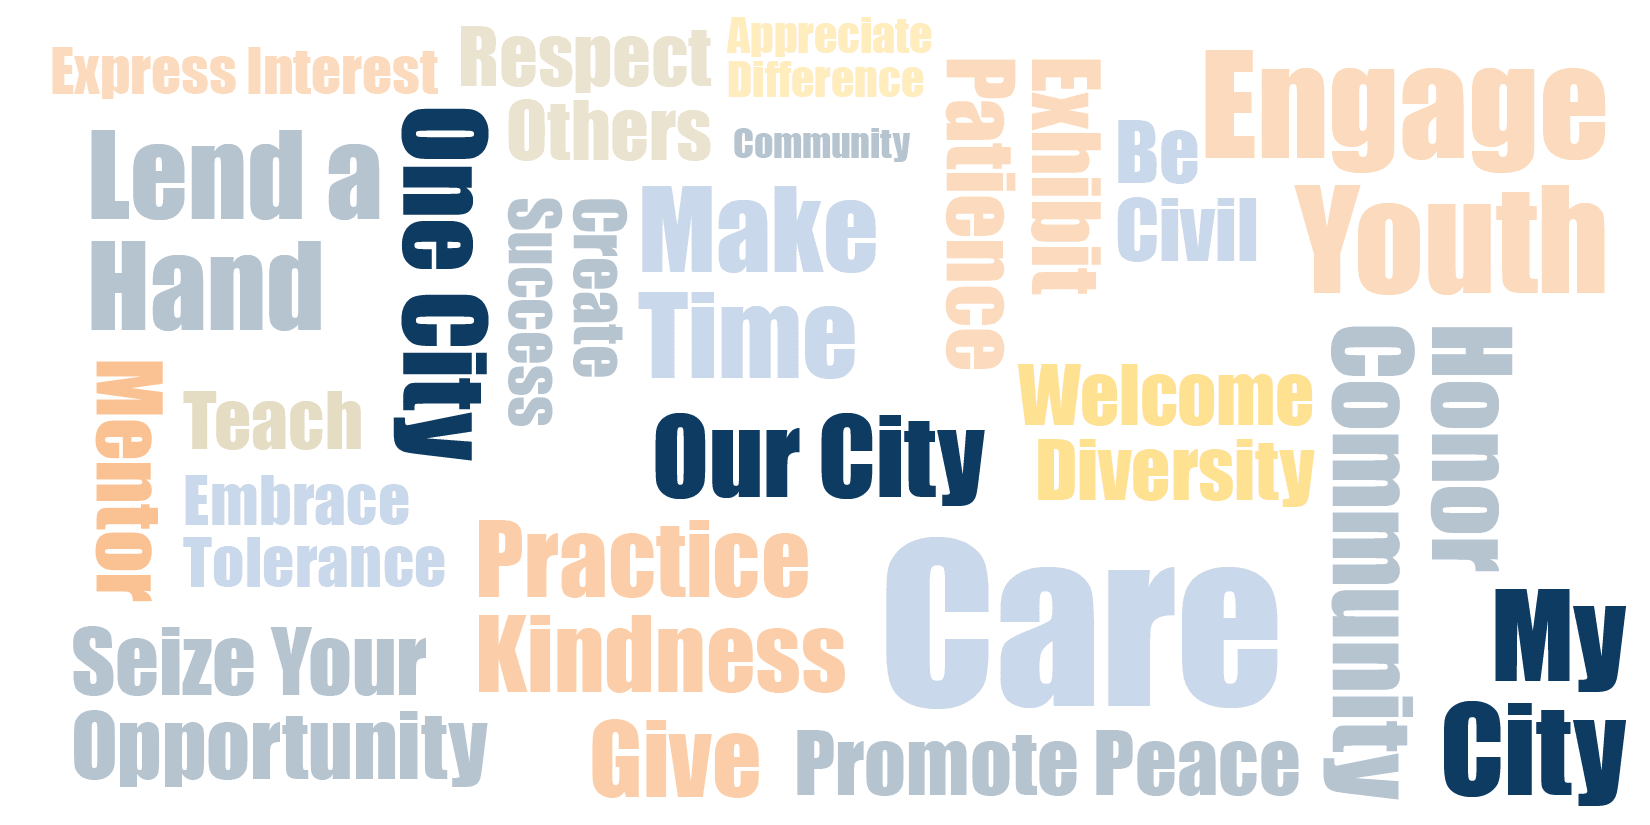 One City - Our City - My City - Word Collage